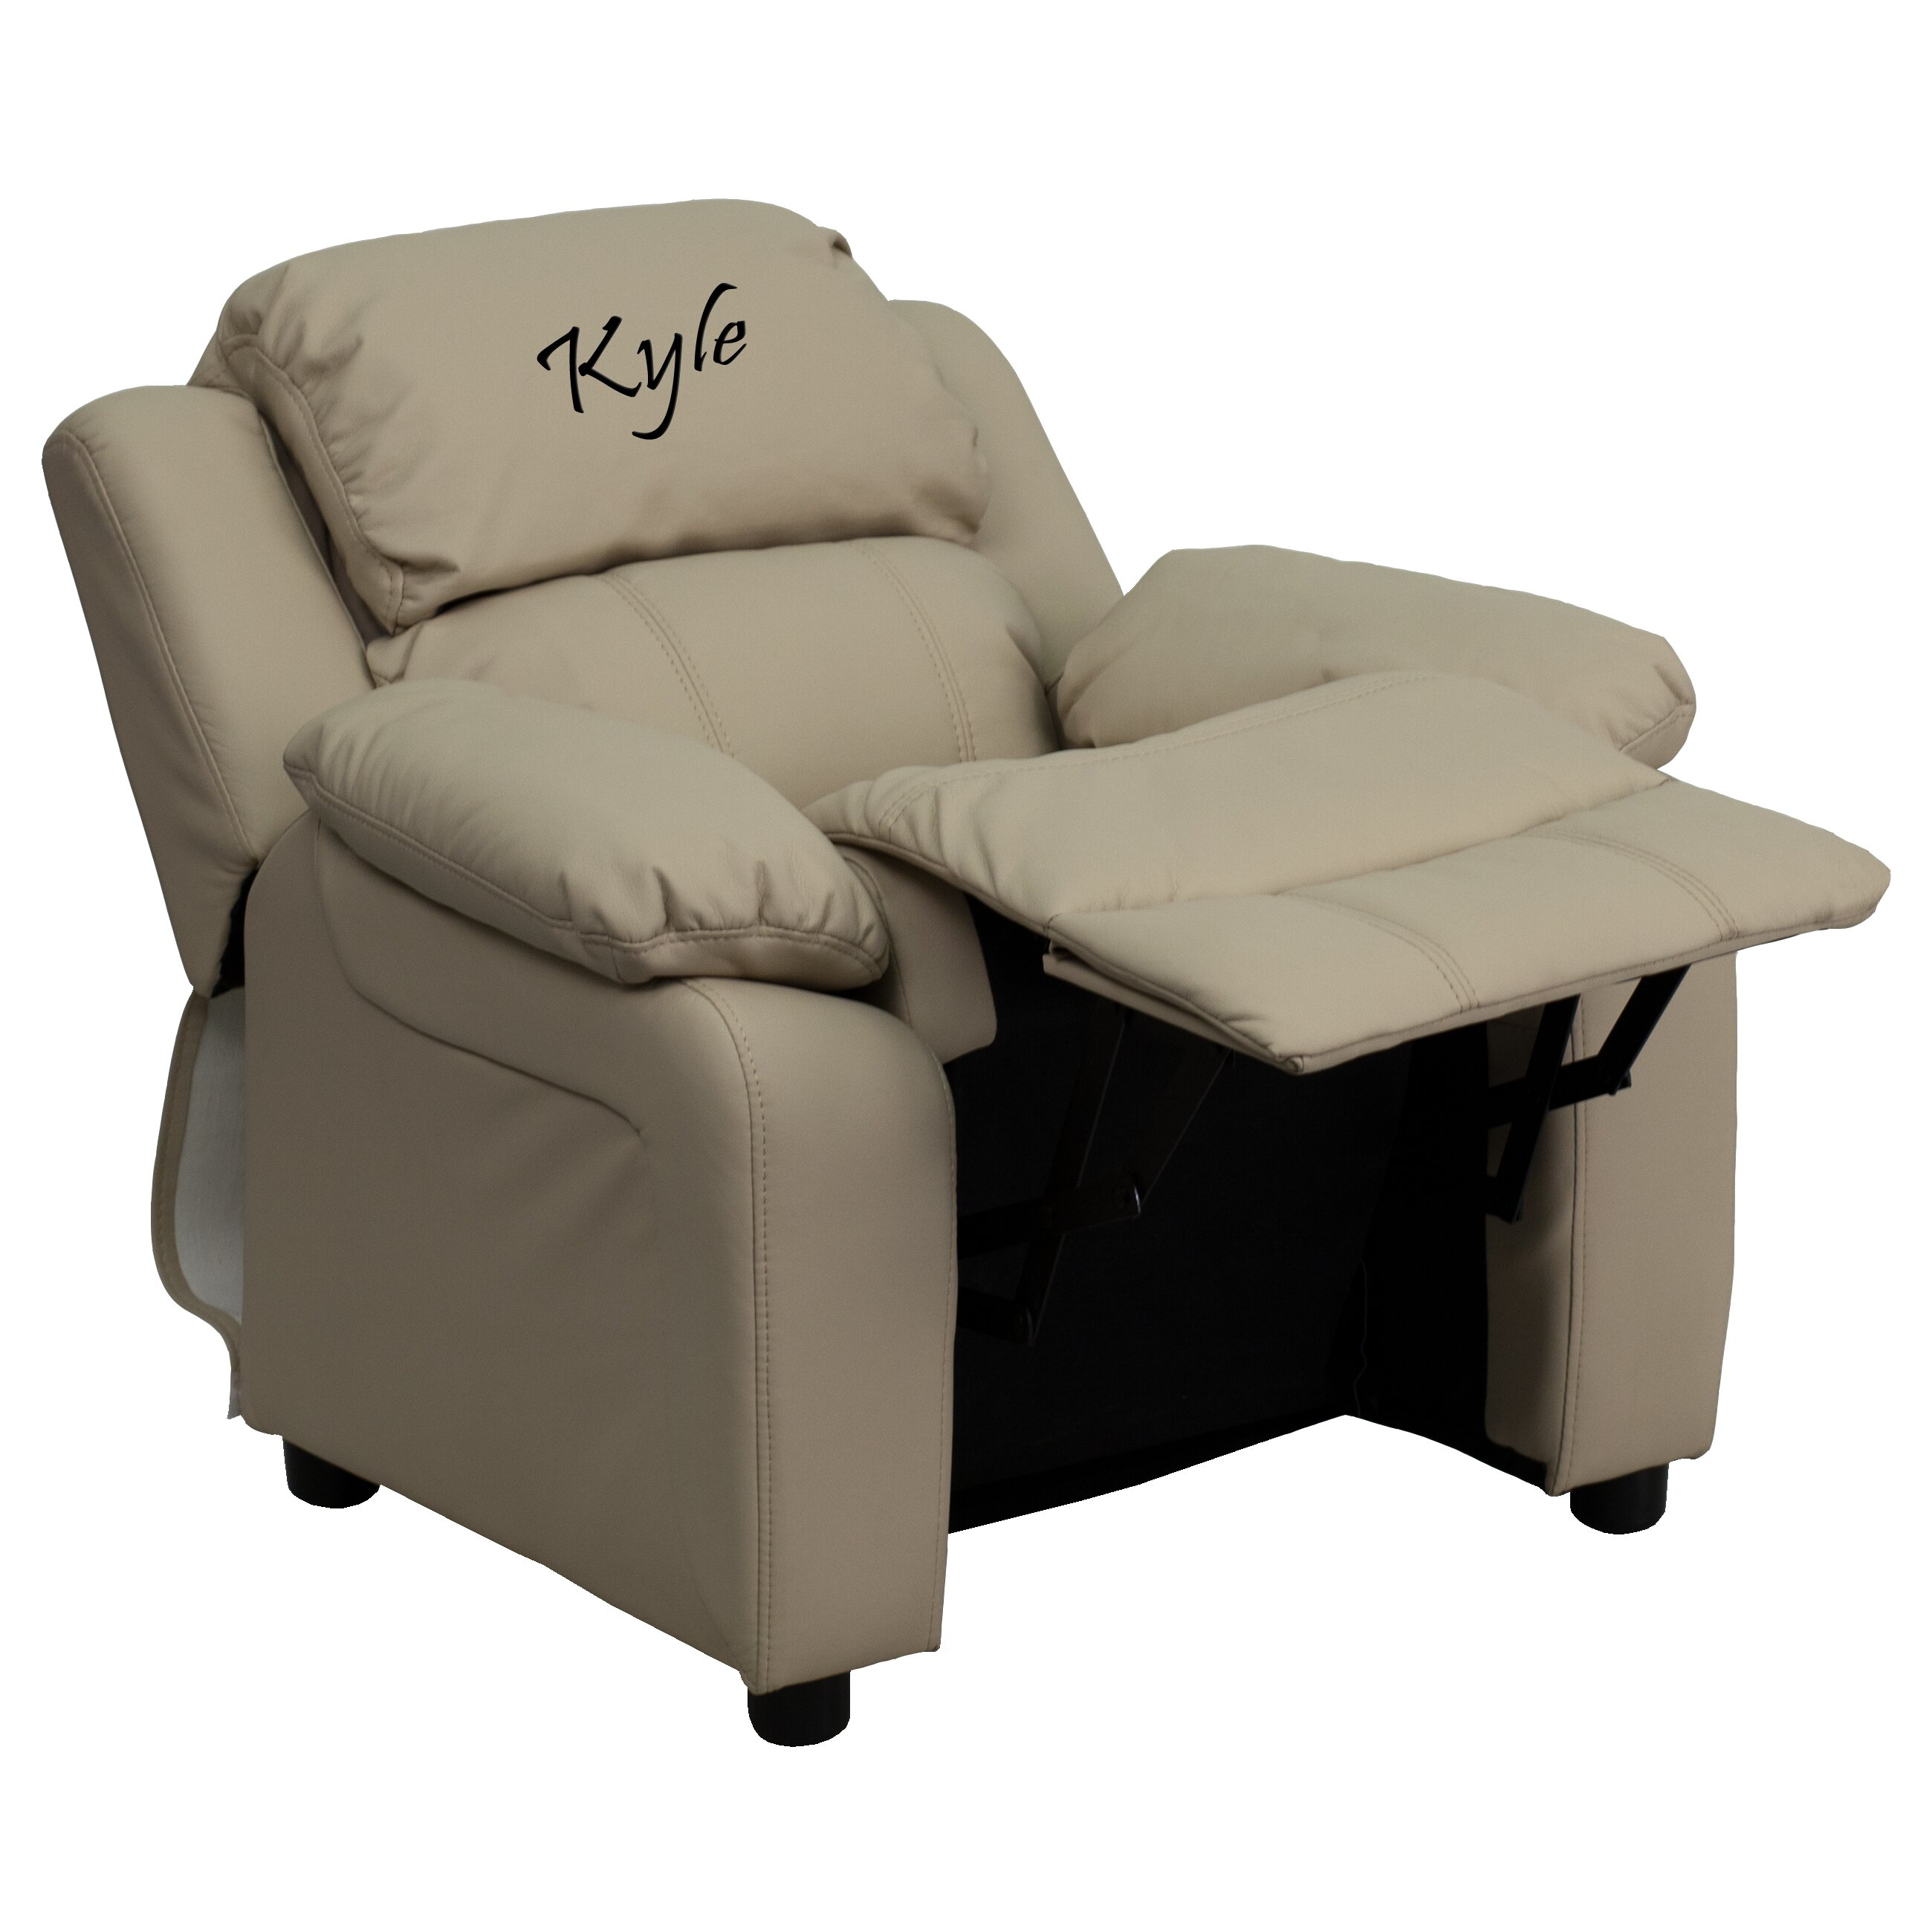 Flash furniture deluxe contemporary personalized kids for Monogrammed kids chair